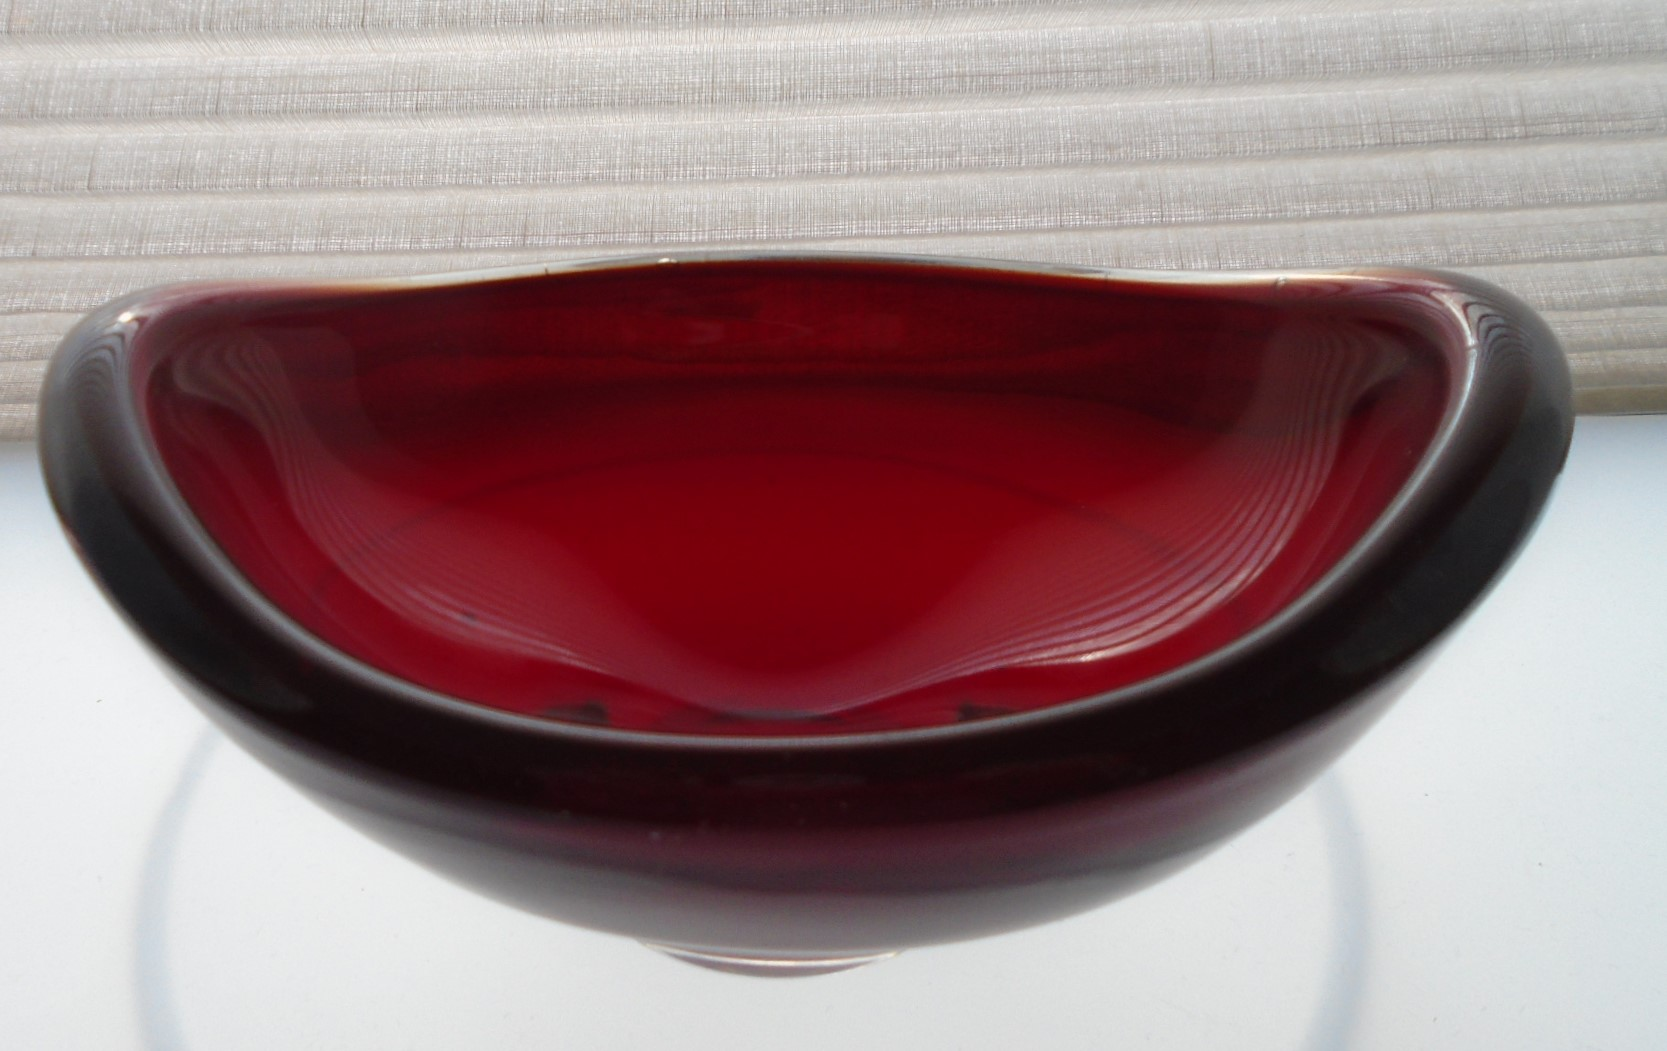 Vintage Whitefriars ruby red glass bowl designed by Geoffrey Baxter ref pattern No 9515.